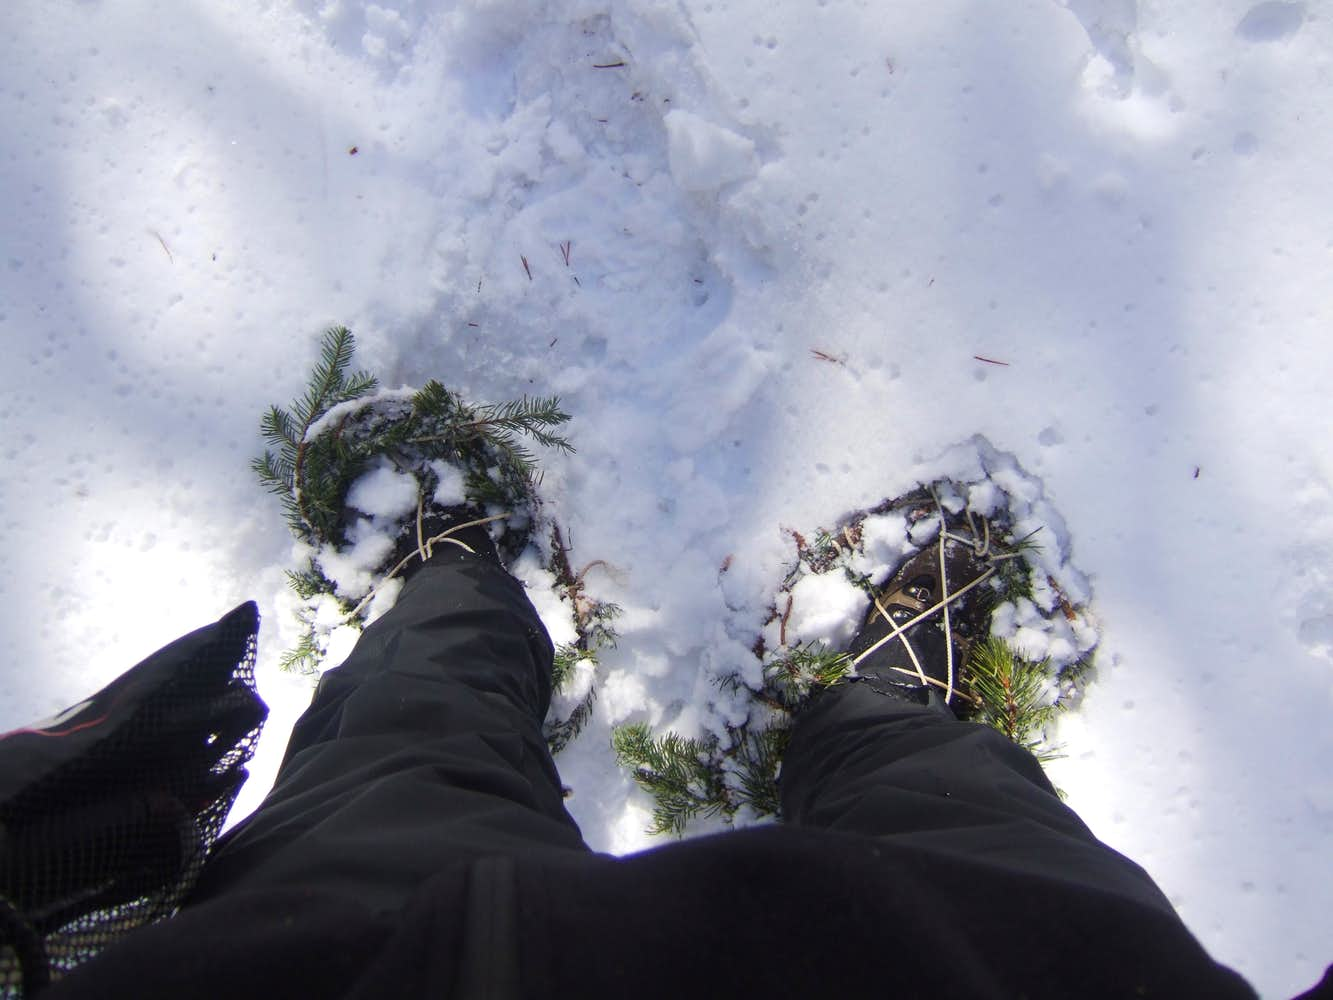 Homemade snowshoes